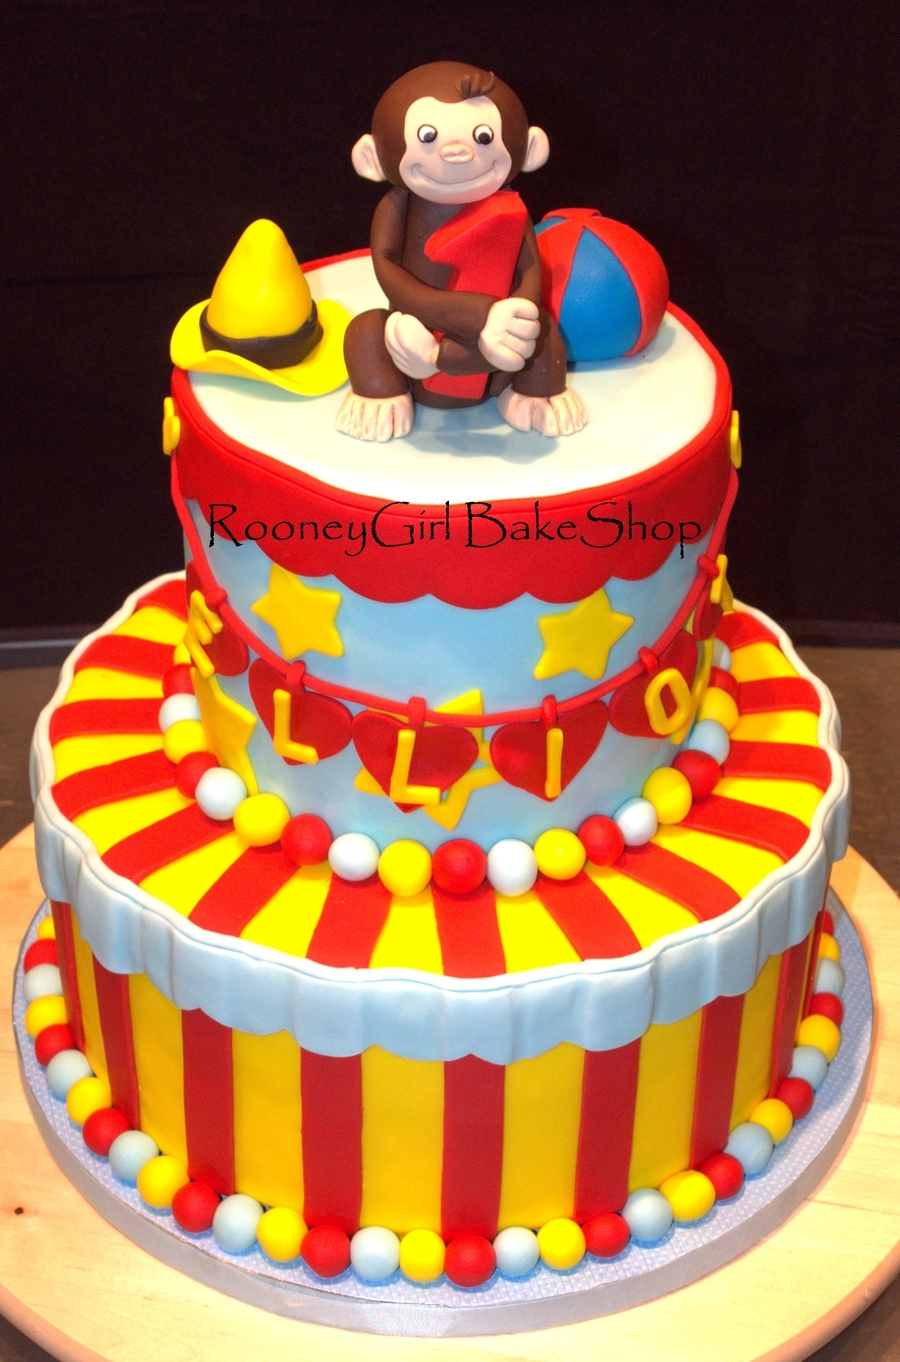 Wondrous Curious George 1St Birthday Cake Cakecentral Com Personalised Birthday Cards Paralily Jamesorg